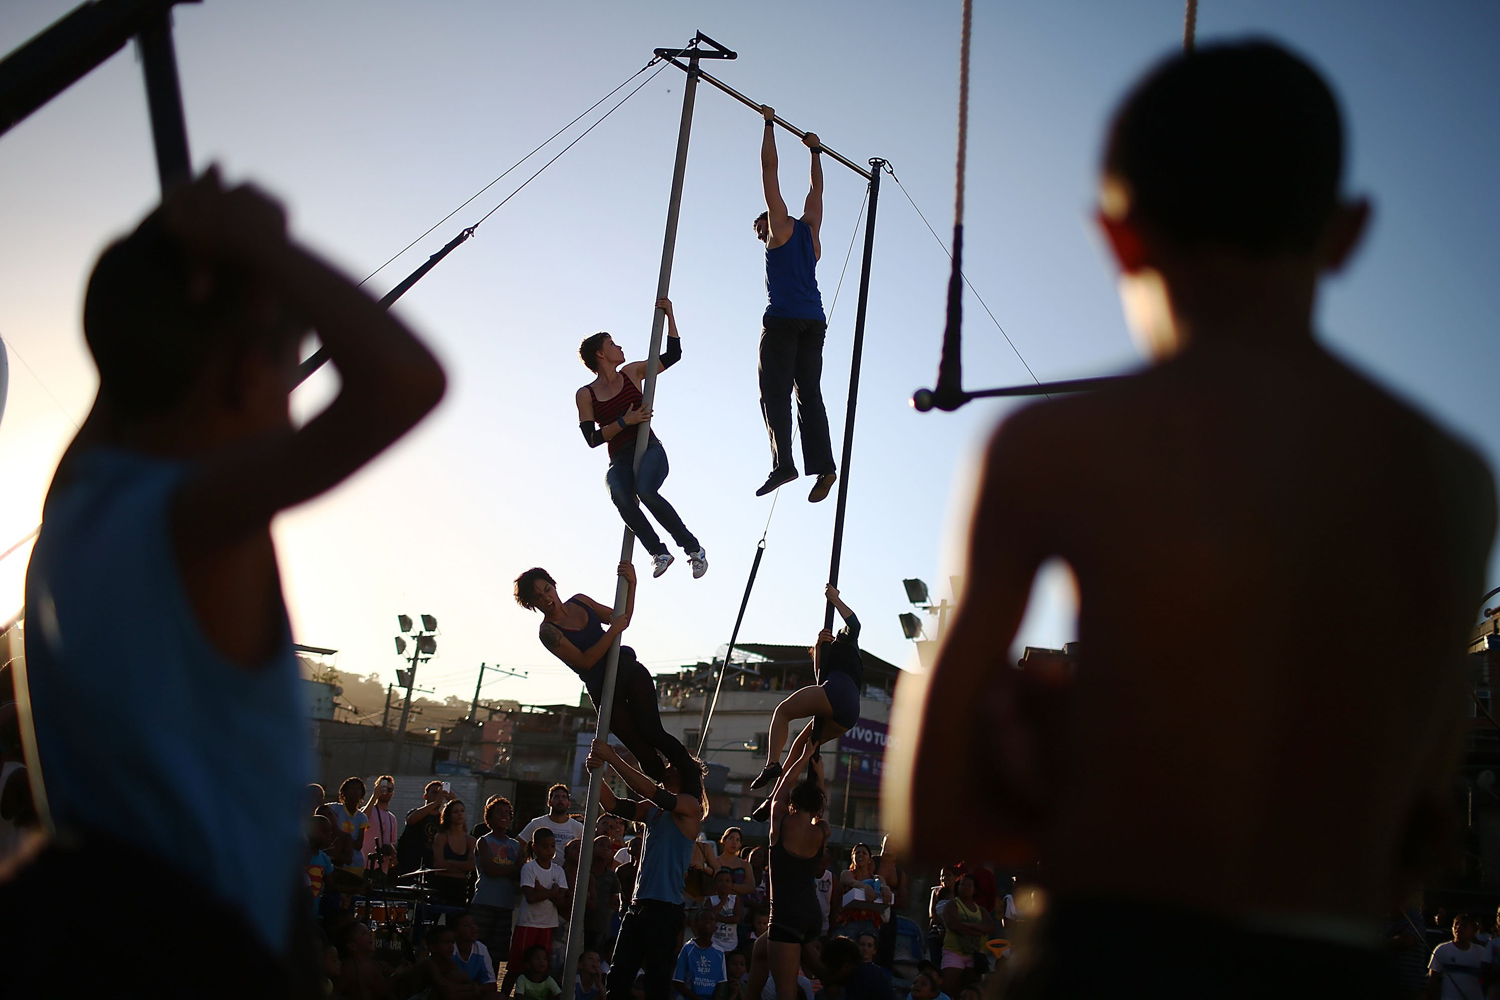 May 12, 2014. Artists from the Cia Base circus group perform in the show Futebol Voador (Flying Soccer) during the International Circus Festival in the Vila Cruzeiro slum, or favela, in Rio de Janeiro, Brazil.